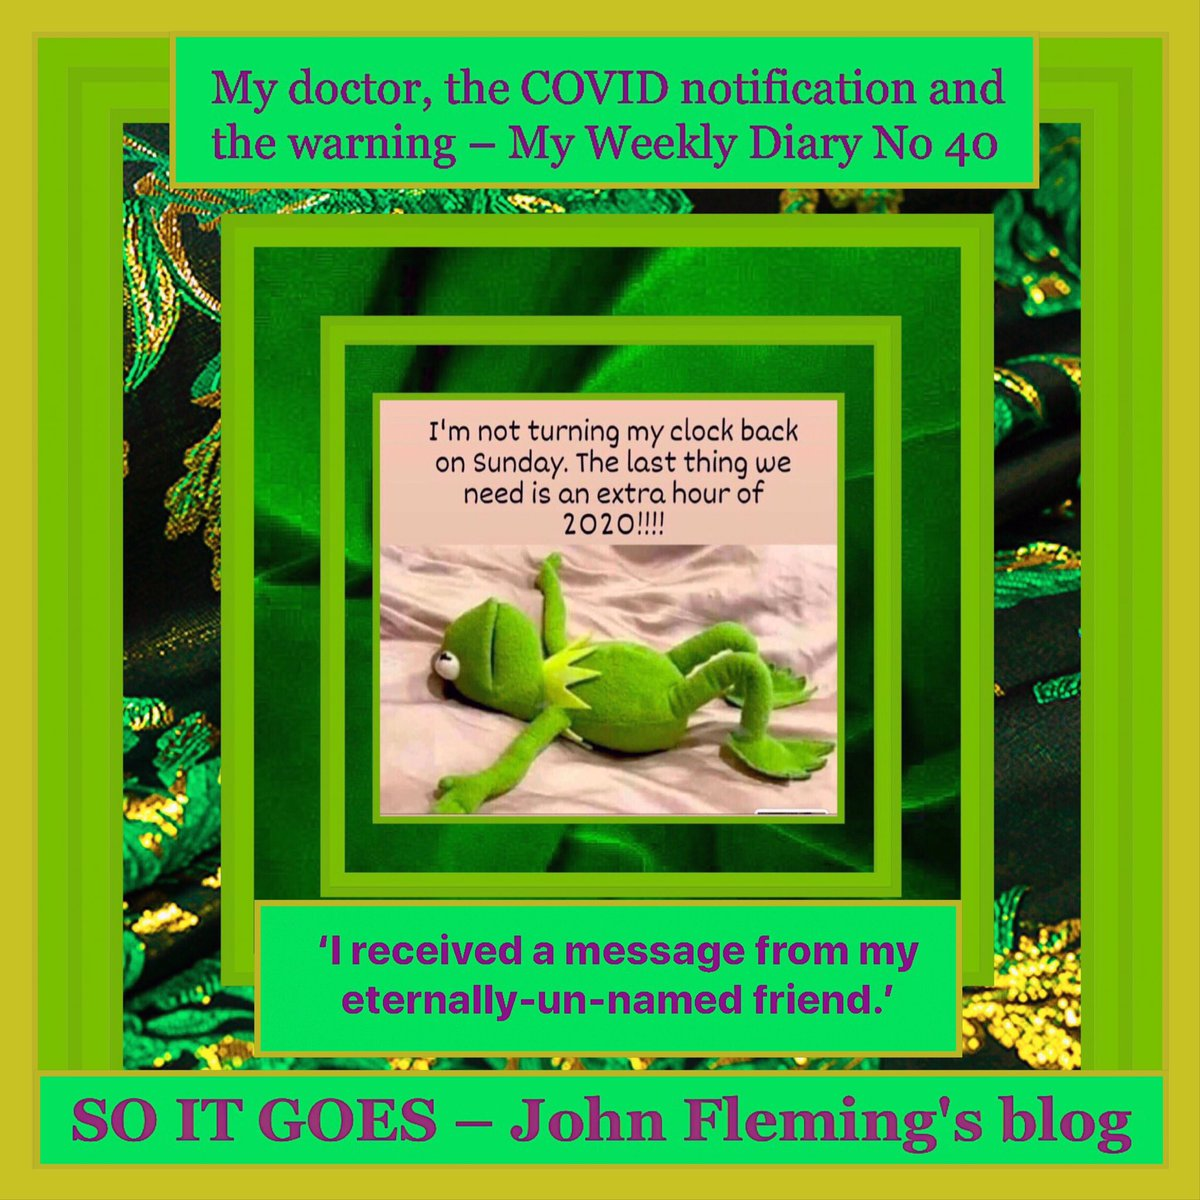 John Fleming's Weekly #Diary No 40 - My #doctor, the #COVID notification & the warning.  #thejohnfleming #blog  #newyorkcity #bronx #manhattan #statensland #queens #brooklyn #soho #greenwichvillage #melbourne #adelaide #auckland #toronto #vancouver #sfo    https://t.co/WZJH5CpO48 https://t.co/Hb8BhFYghm